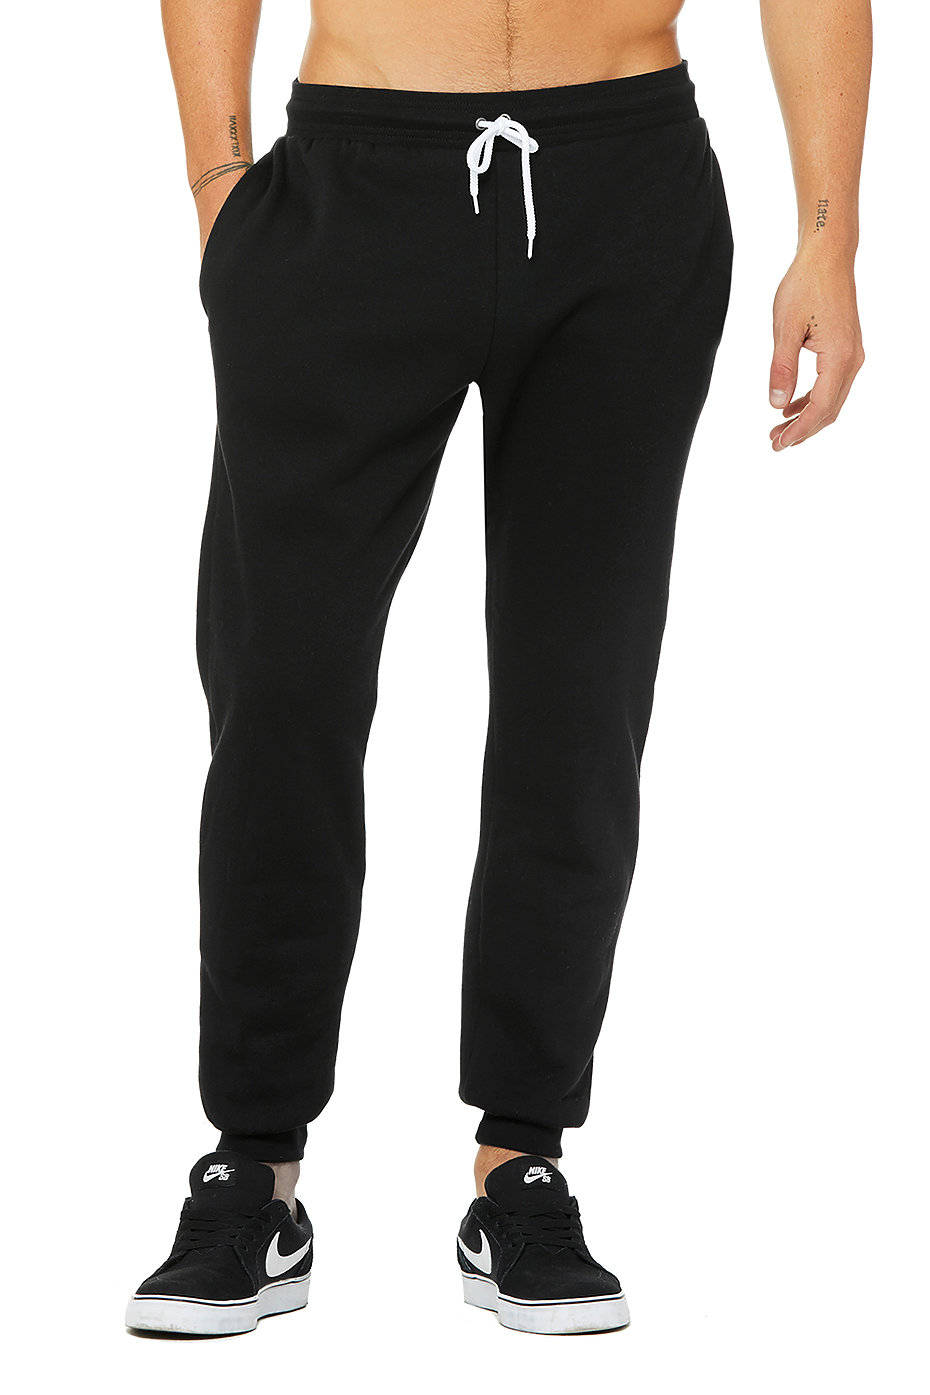 Men's Joggers. Made for more than just jogging, you're going to love Tillys' selection of men's joggers & sweatpants. Men's joggers are the perfect way to make casual comfort possible. More than just a regular pair of sweatpants, joggers for men look cool, keep you warm, and feel great.